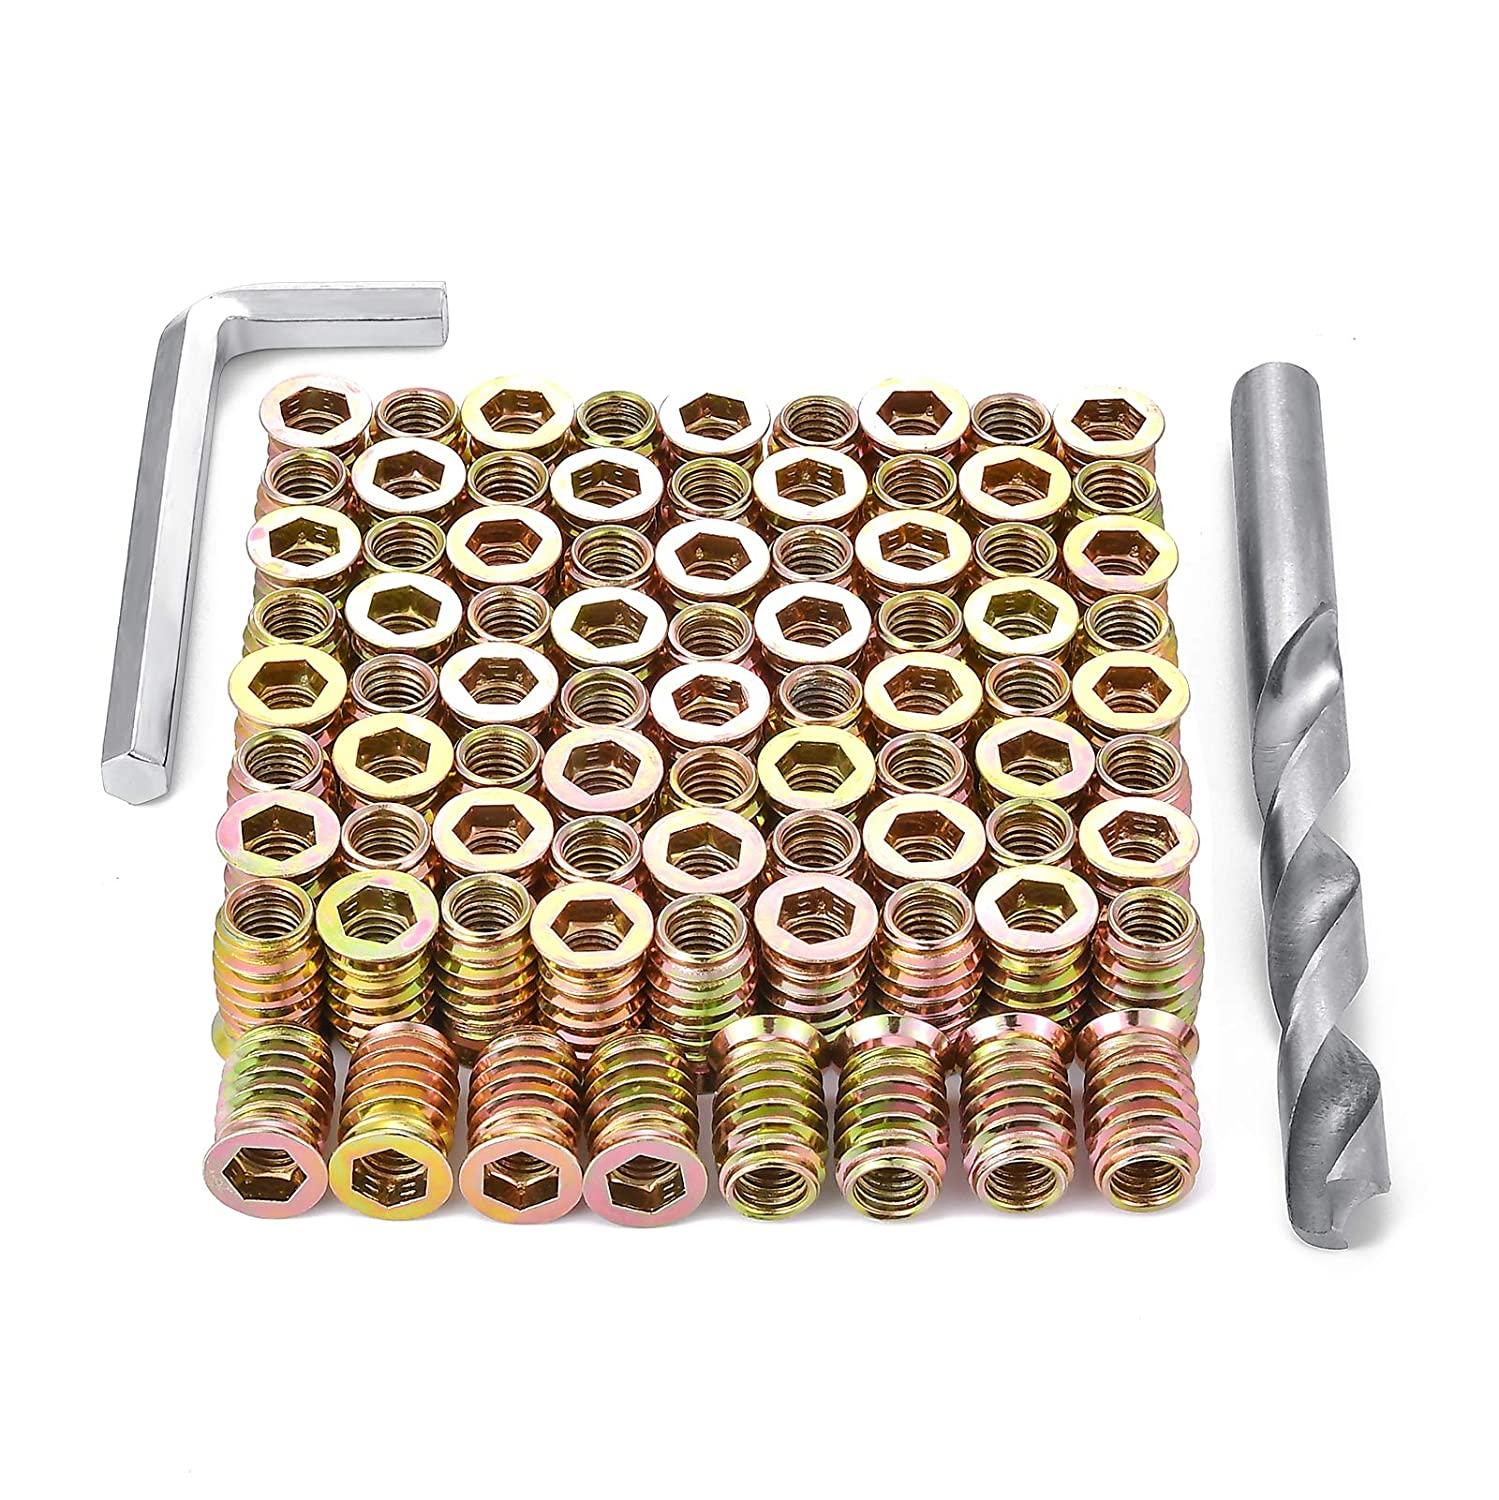 PGMJ 80 Pieces M8 Wood Inserts Bolt Furniture Screw in Nut Threaded Fastener Connector Hex Socket Drive for Wood Furniture Assortment (M8x20mm)